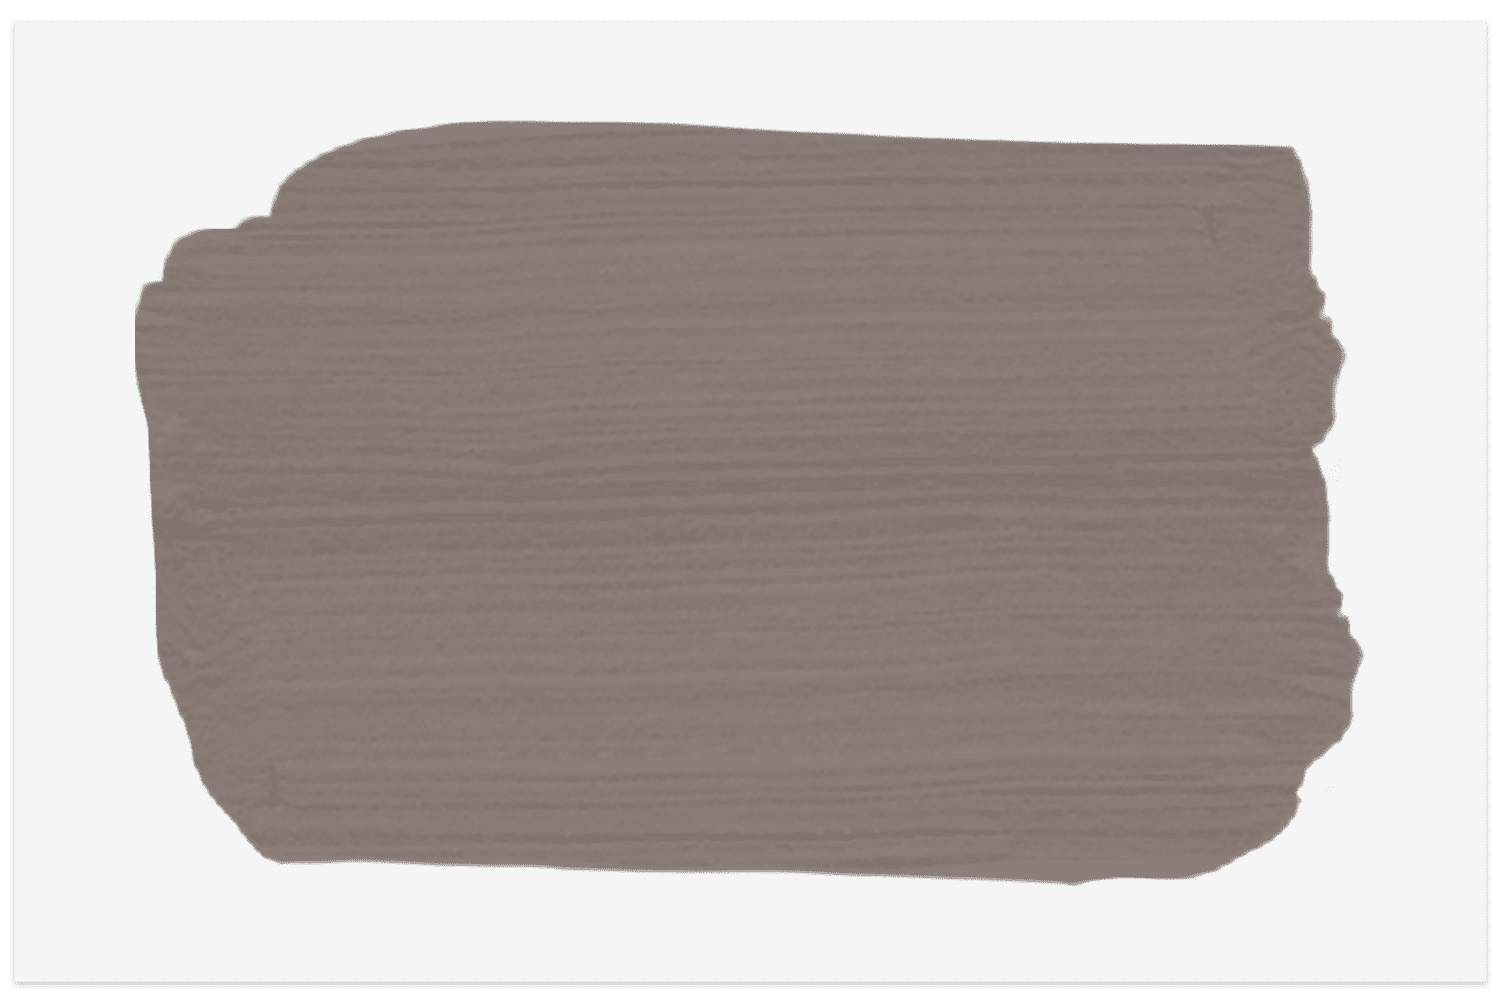 10 Best Taupe Paint Colors,Best Personalized Baby Gifts 2020